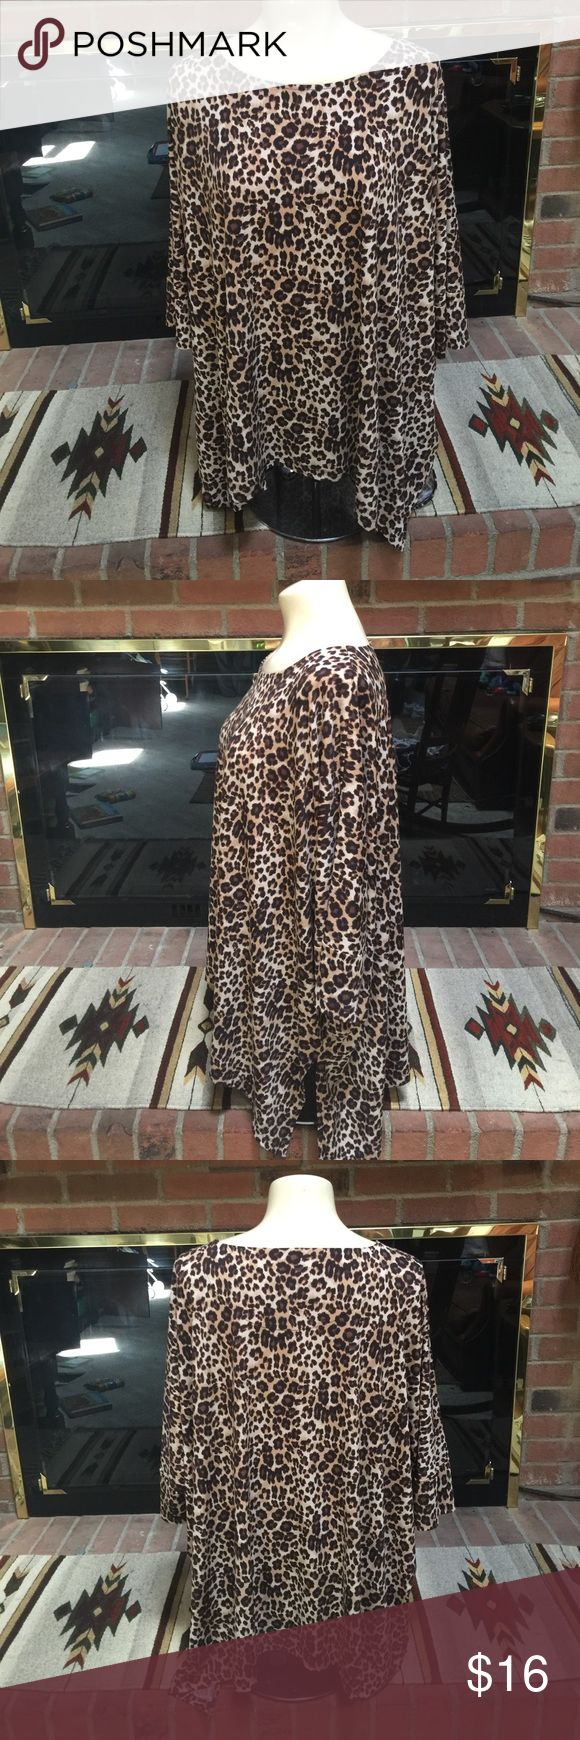 Chicos cheetah leggings top! Sz 2(oversized) Super cute-Great for leggings! I do believe this is a shark bite top, longer on the sides. I love the way the arms blend into the top. Gorgeous! Thanks! Chico's Tops Blouses